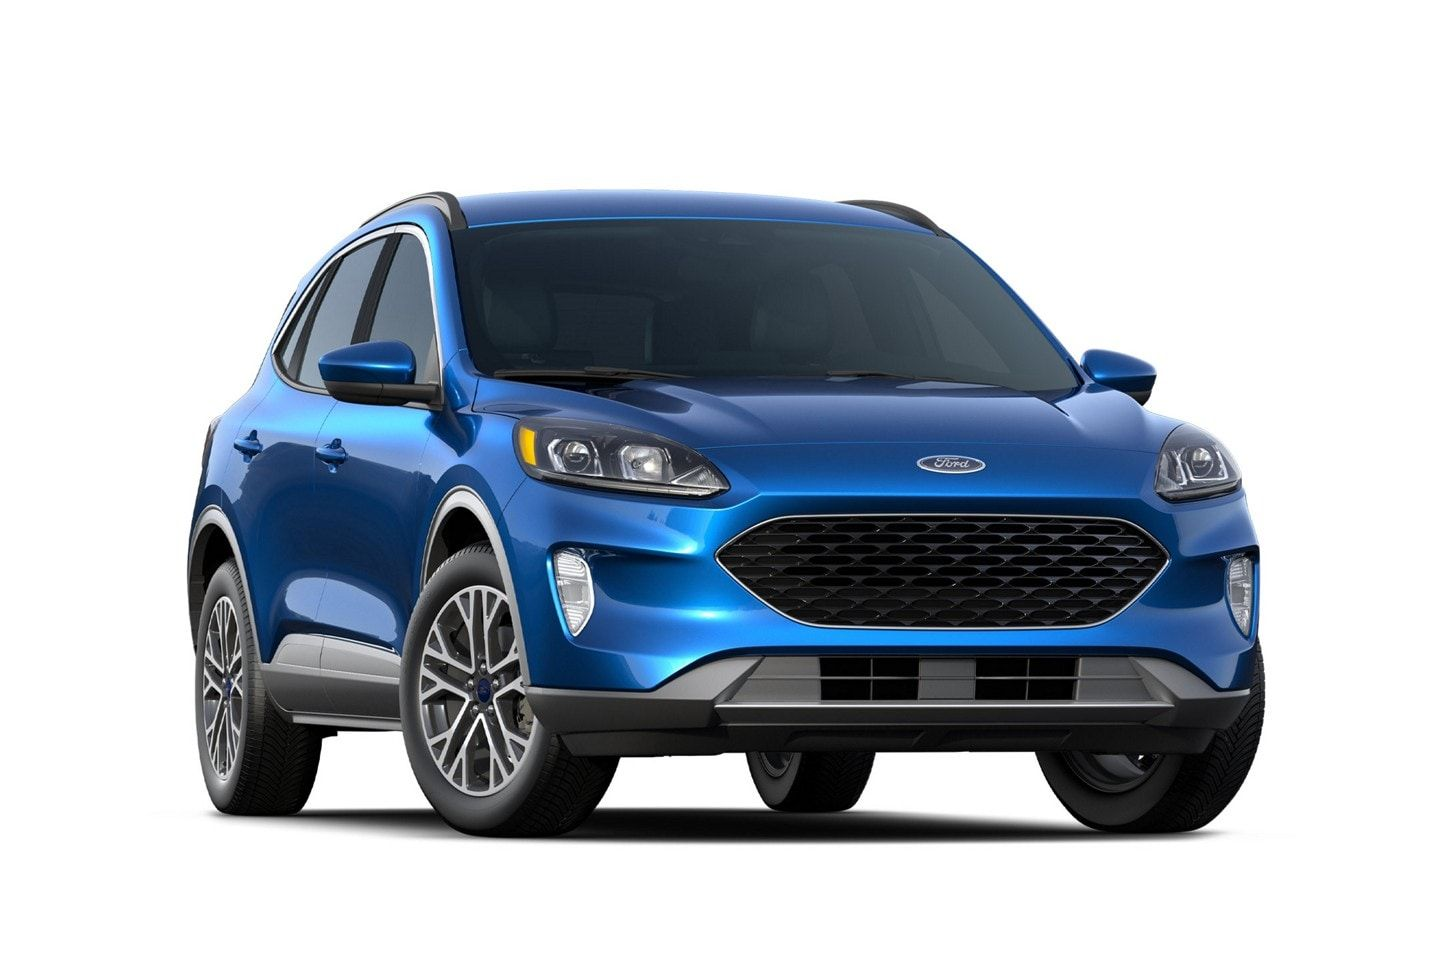 2020 Ford Escape Sel Suv Model Highlights Ford Ca Ford Escape Suv Models Ford